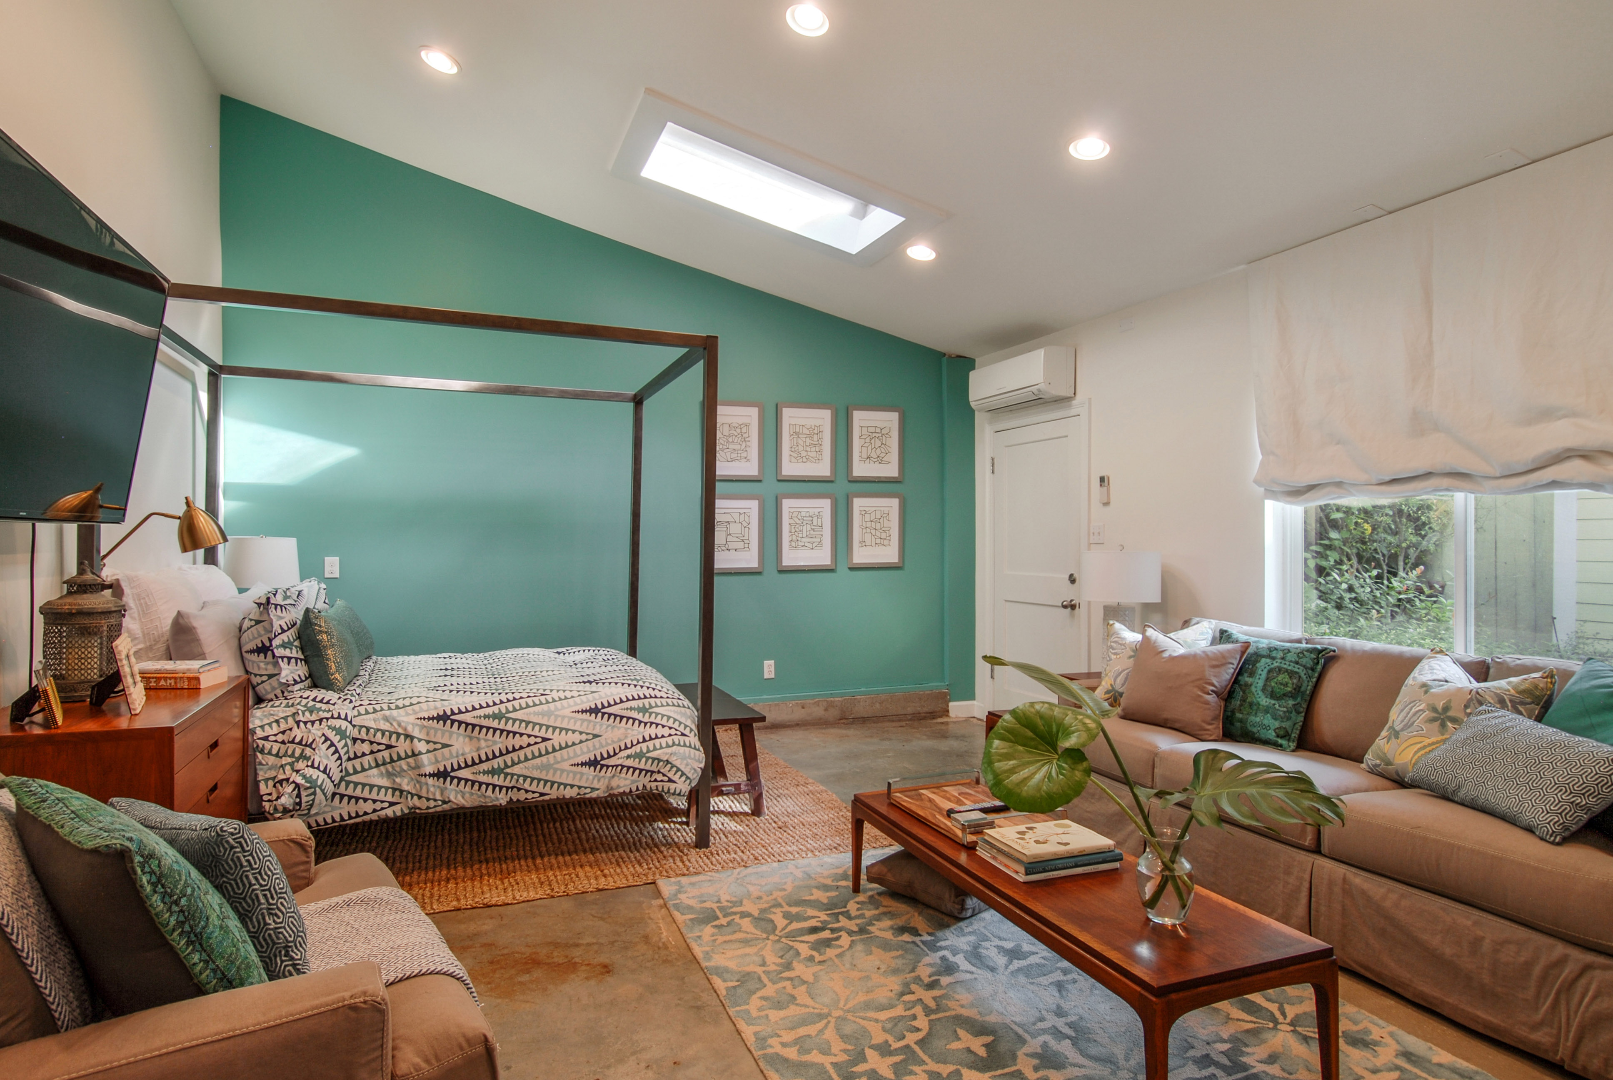 Uptown, Apartment, 1 beds, 1.0 baths, $1900 per month New Orleans Rental - devie image_0